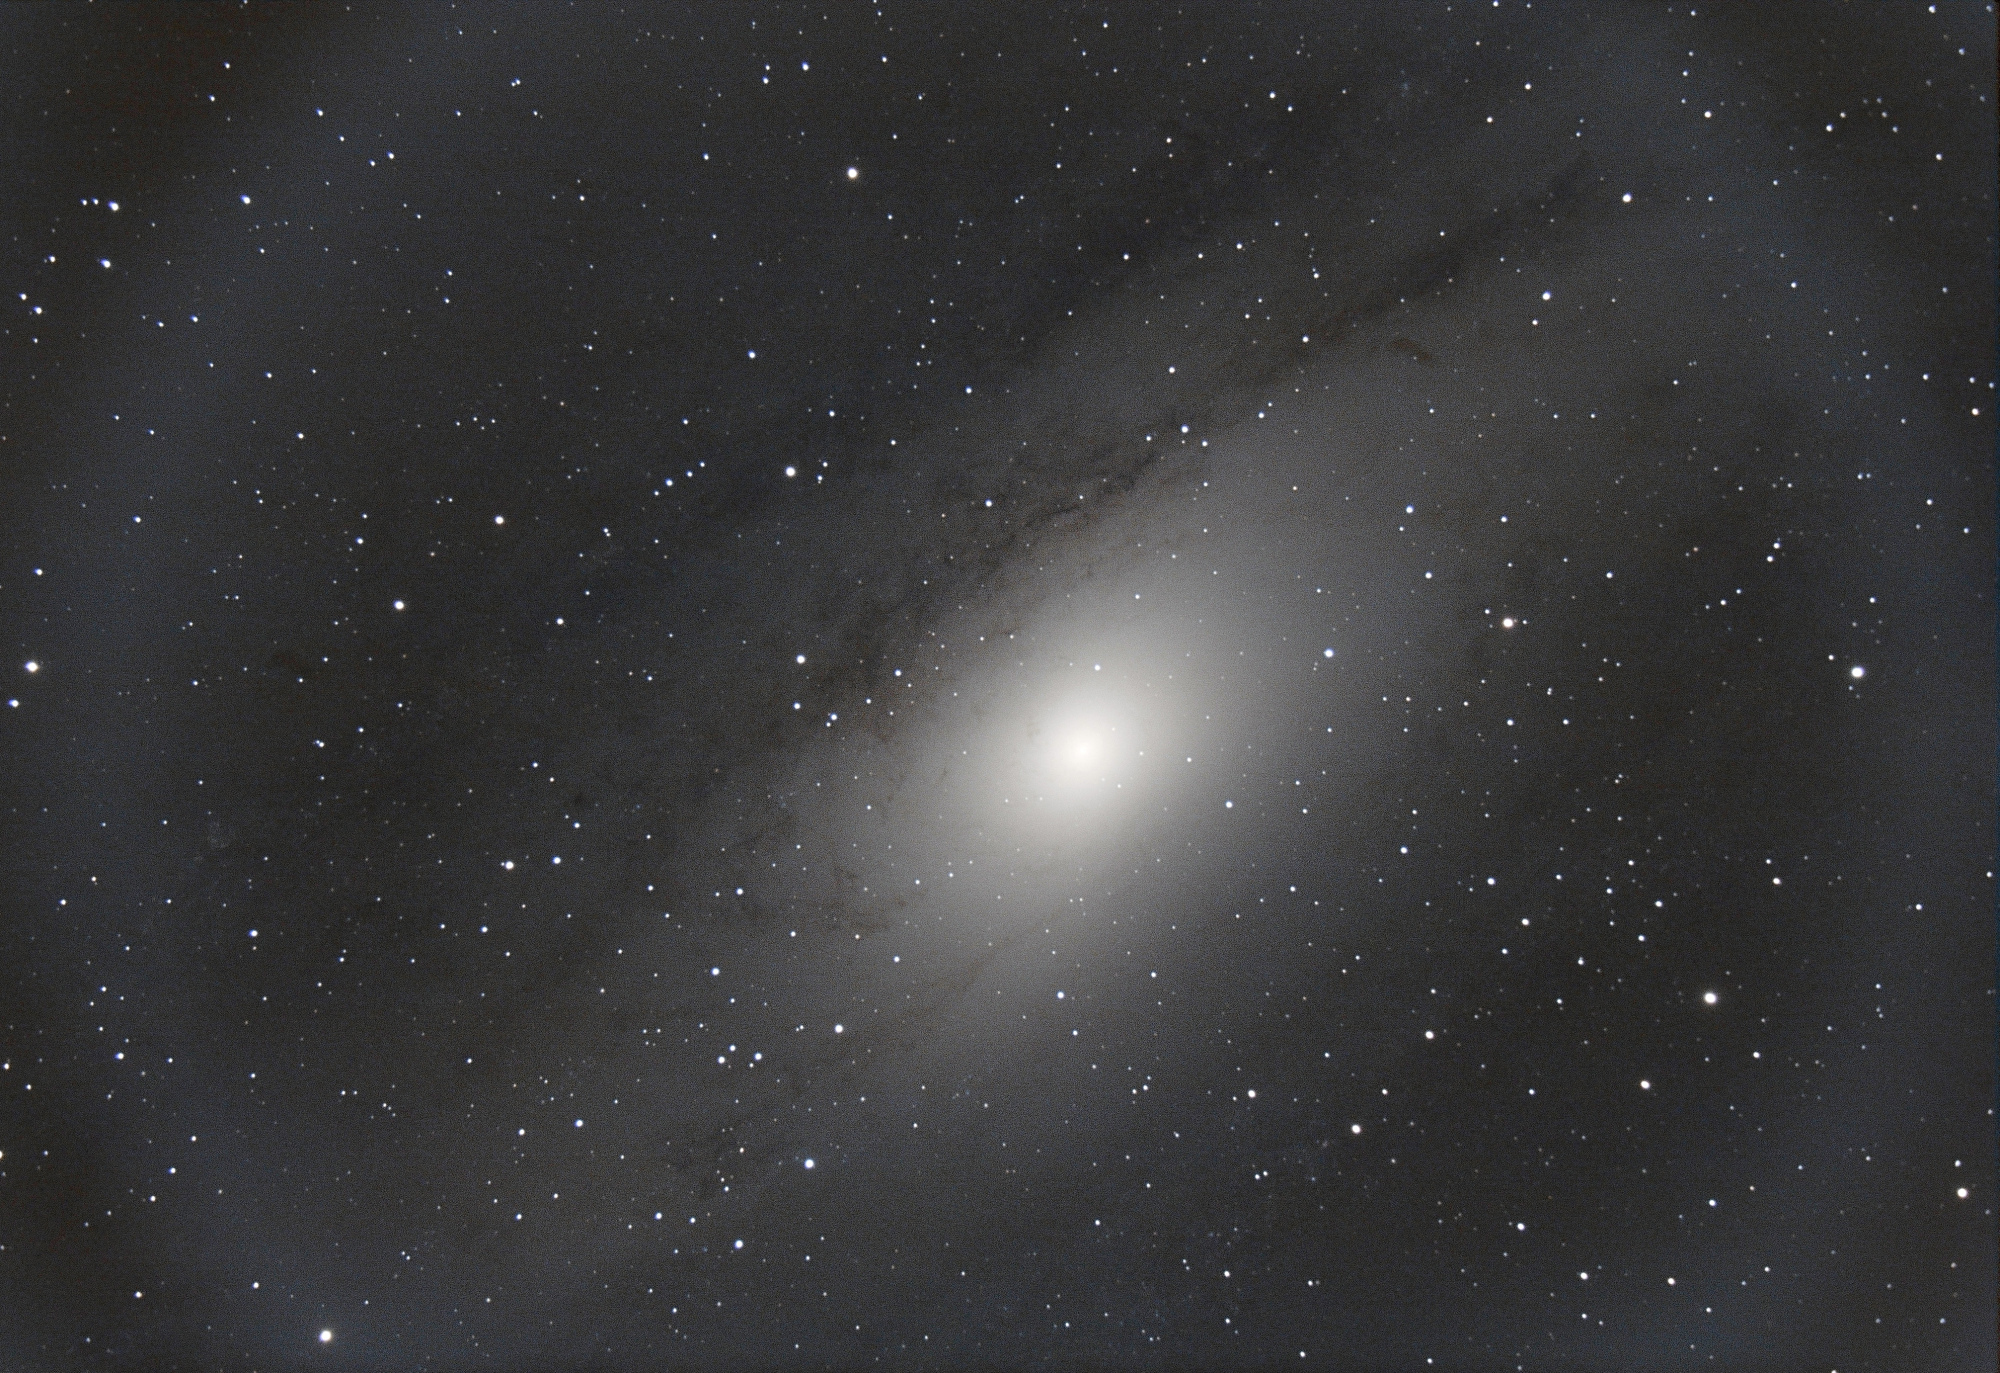 M31_SIRIL_PHOTOSHOP_v3.thumb.jpg.6b05304bf02613f116bb5884881501cc.jpg